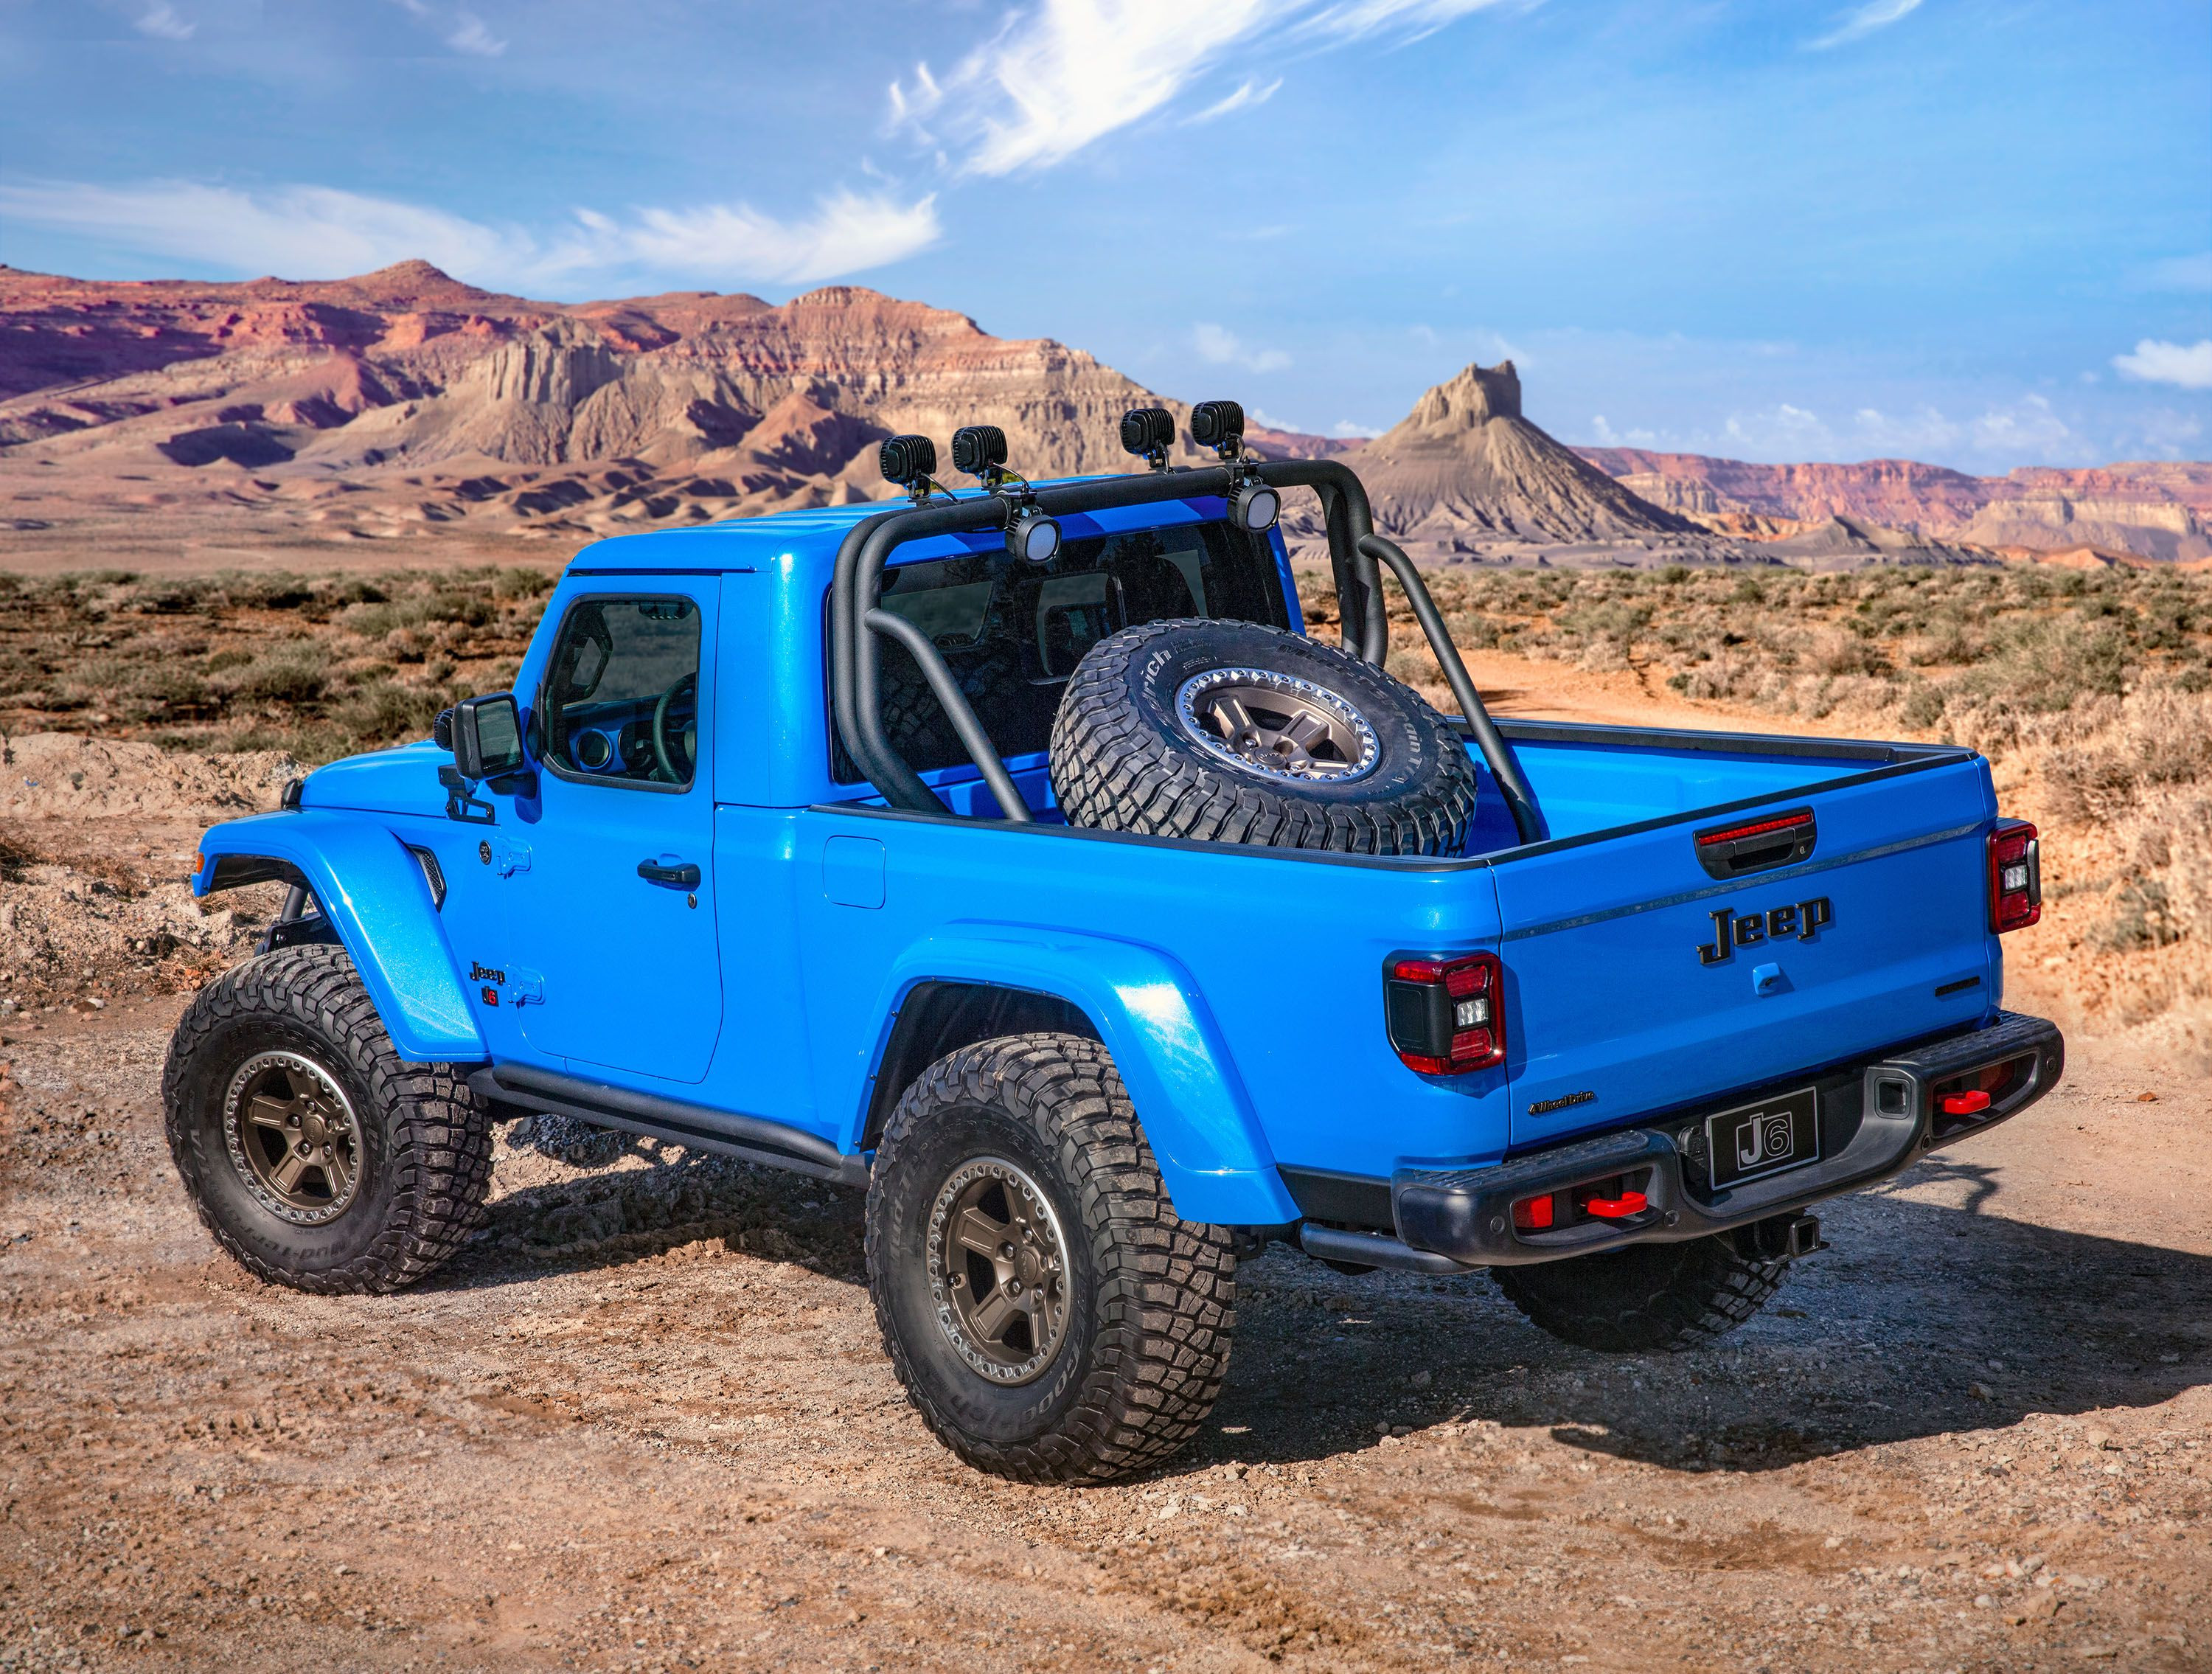 Rear view of a blue Jeep with a wheel in the trunk